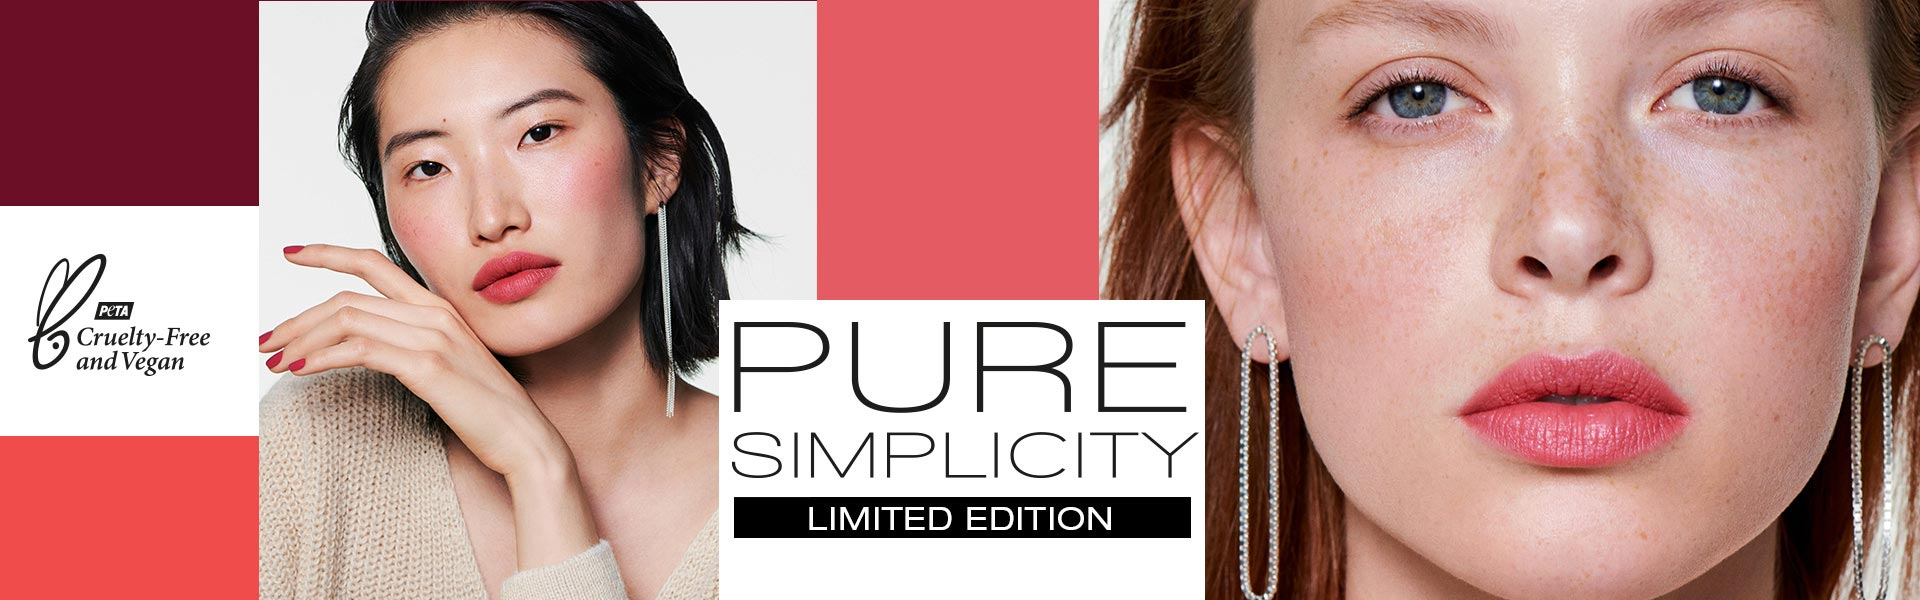 "Limited Edition ""Pure Simplicity"""